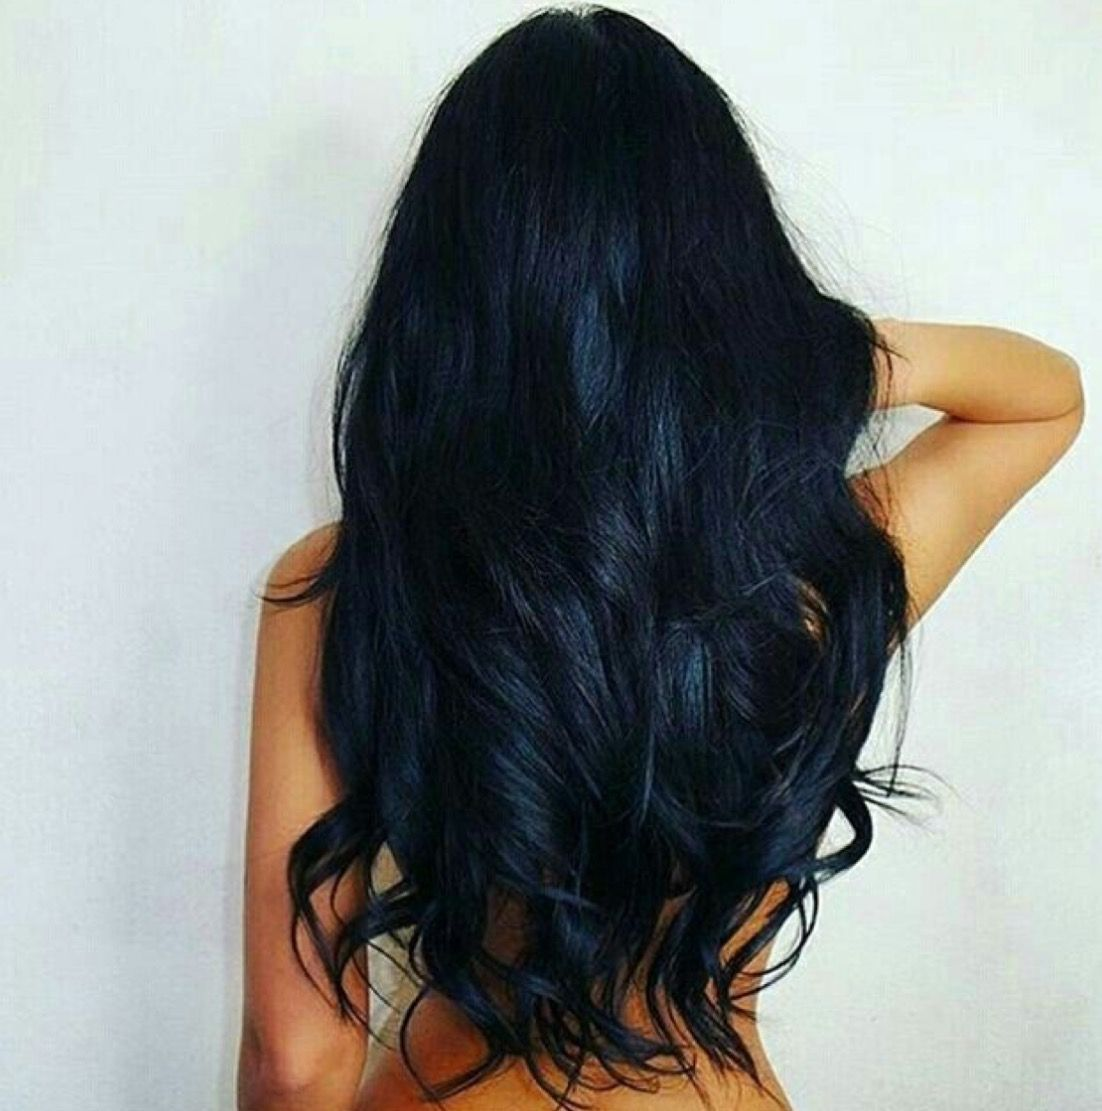 Blue Black All Over Color On Long Wavy Hair Stunning With